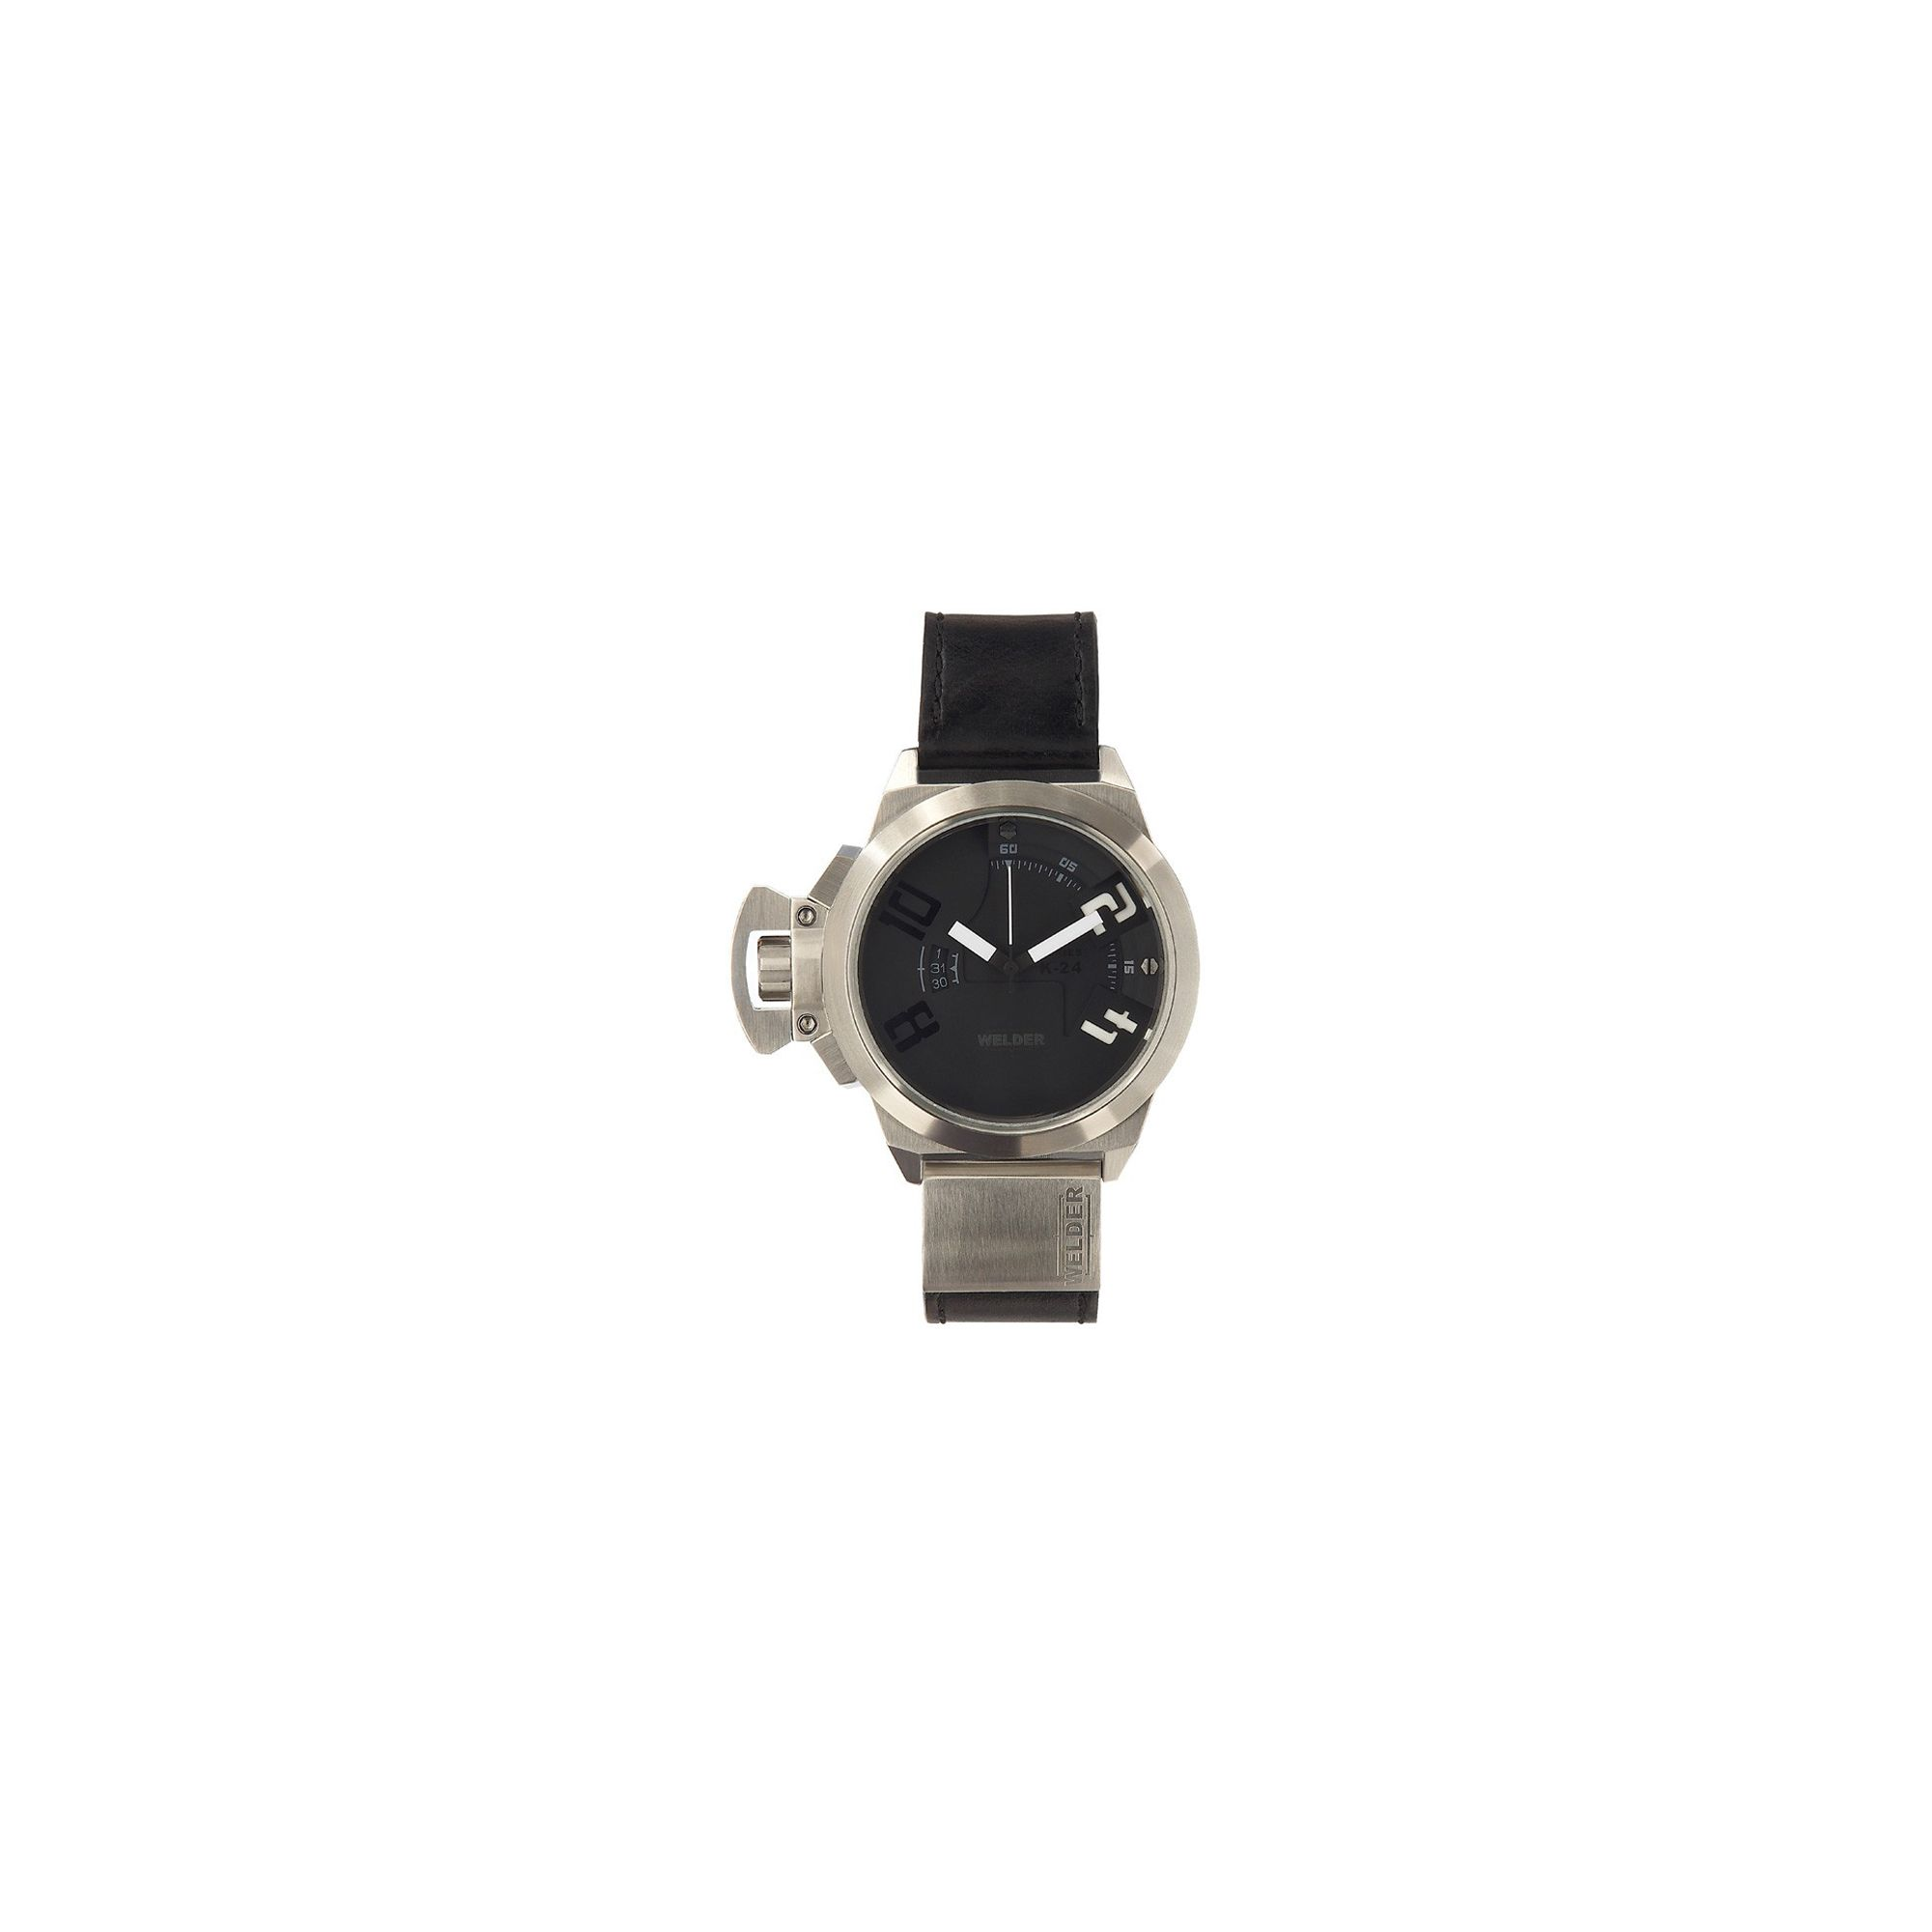 Welder Gents Black Dial Black Rubber Strap Watch K24-3001 at Tesco Direct